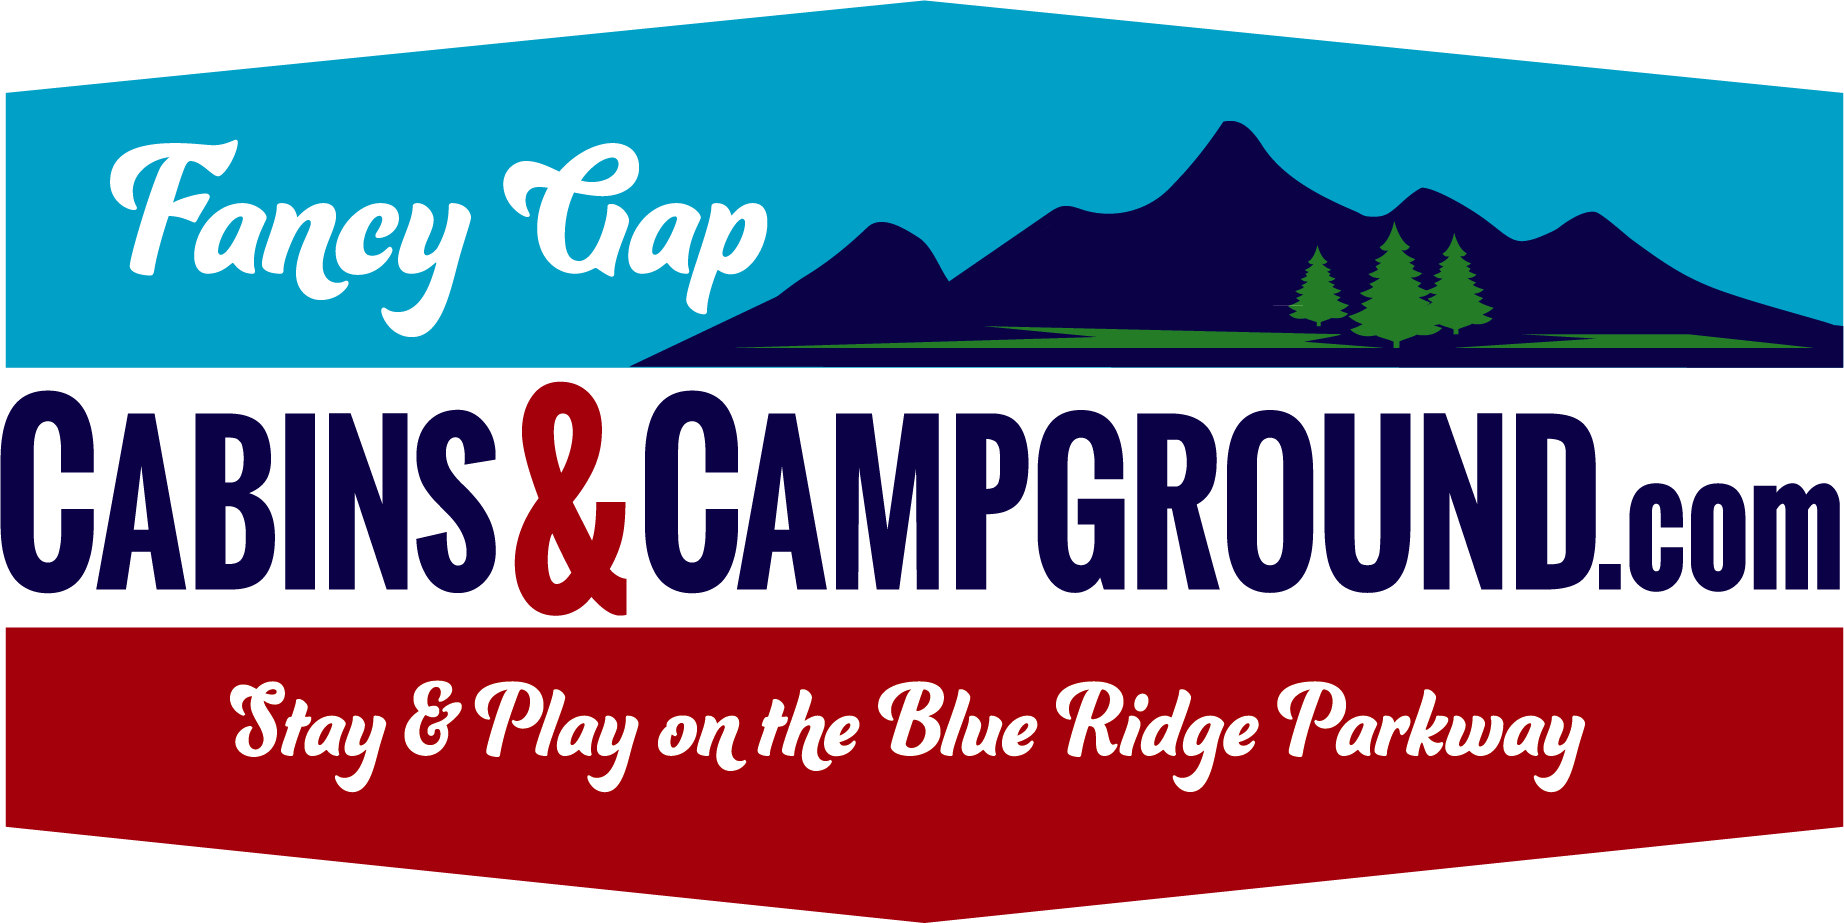 Fancy Gap Cabins & Campground